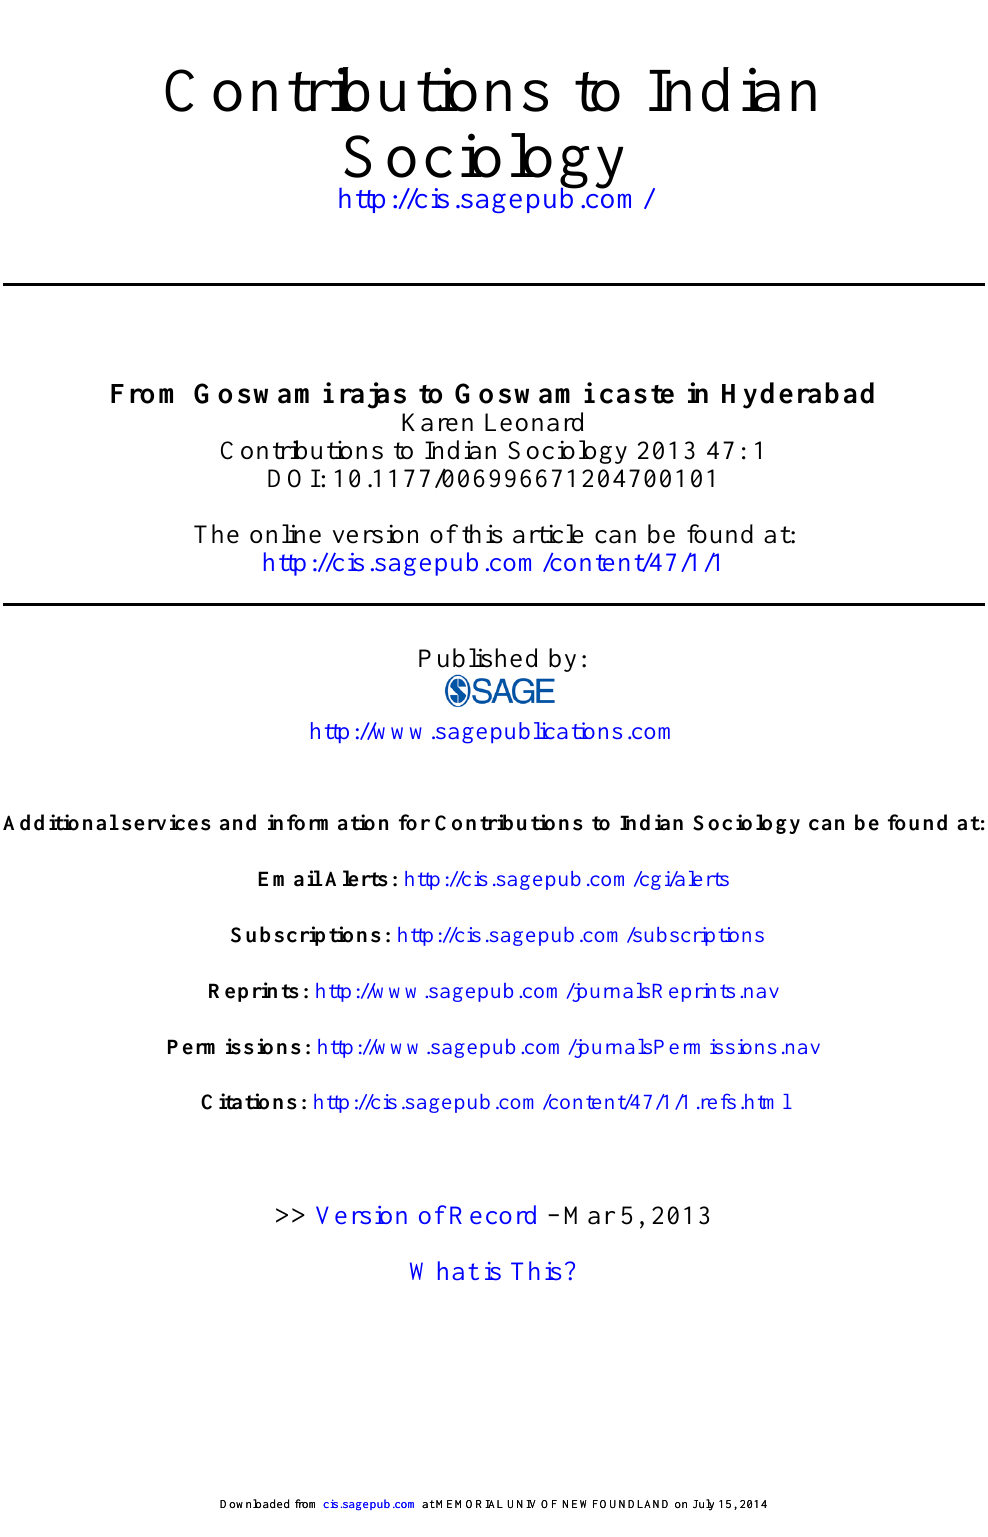 From Goswami rajas to Goswami caste in Hyderabad – topic of research